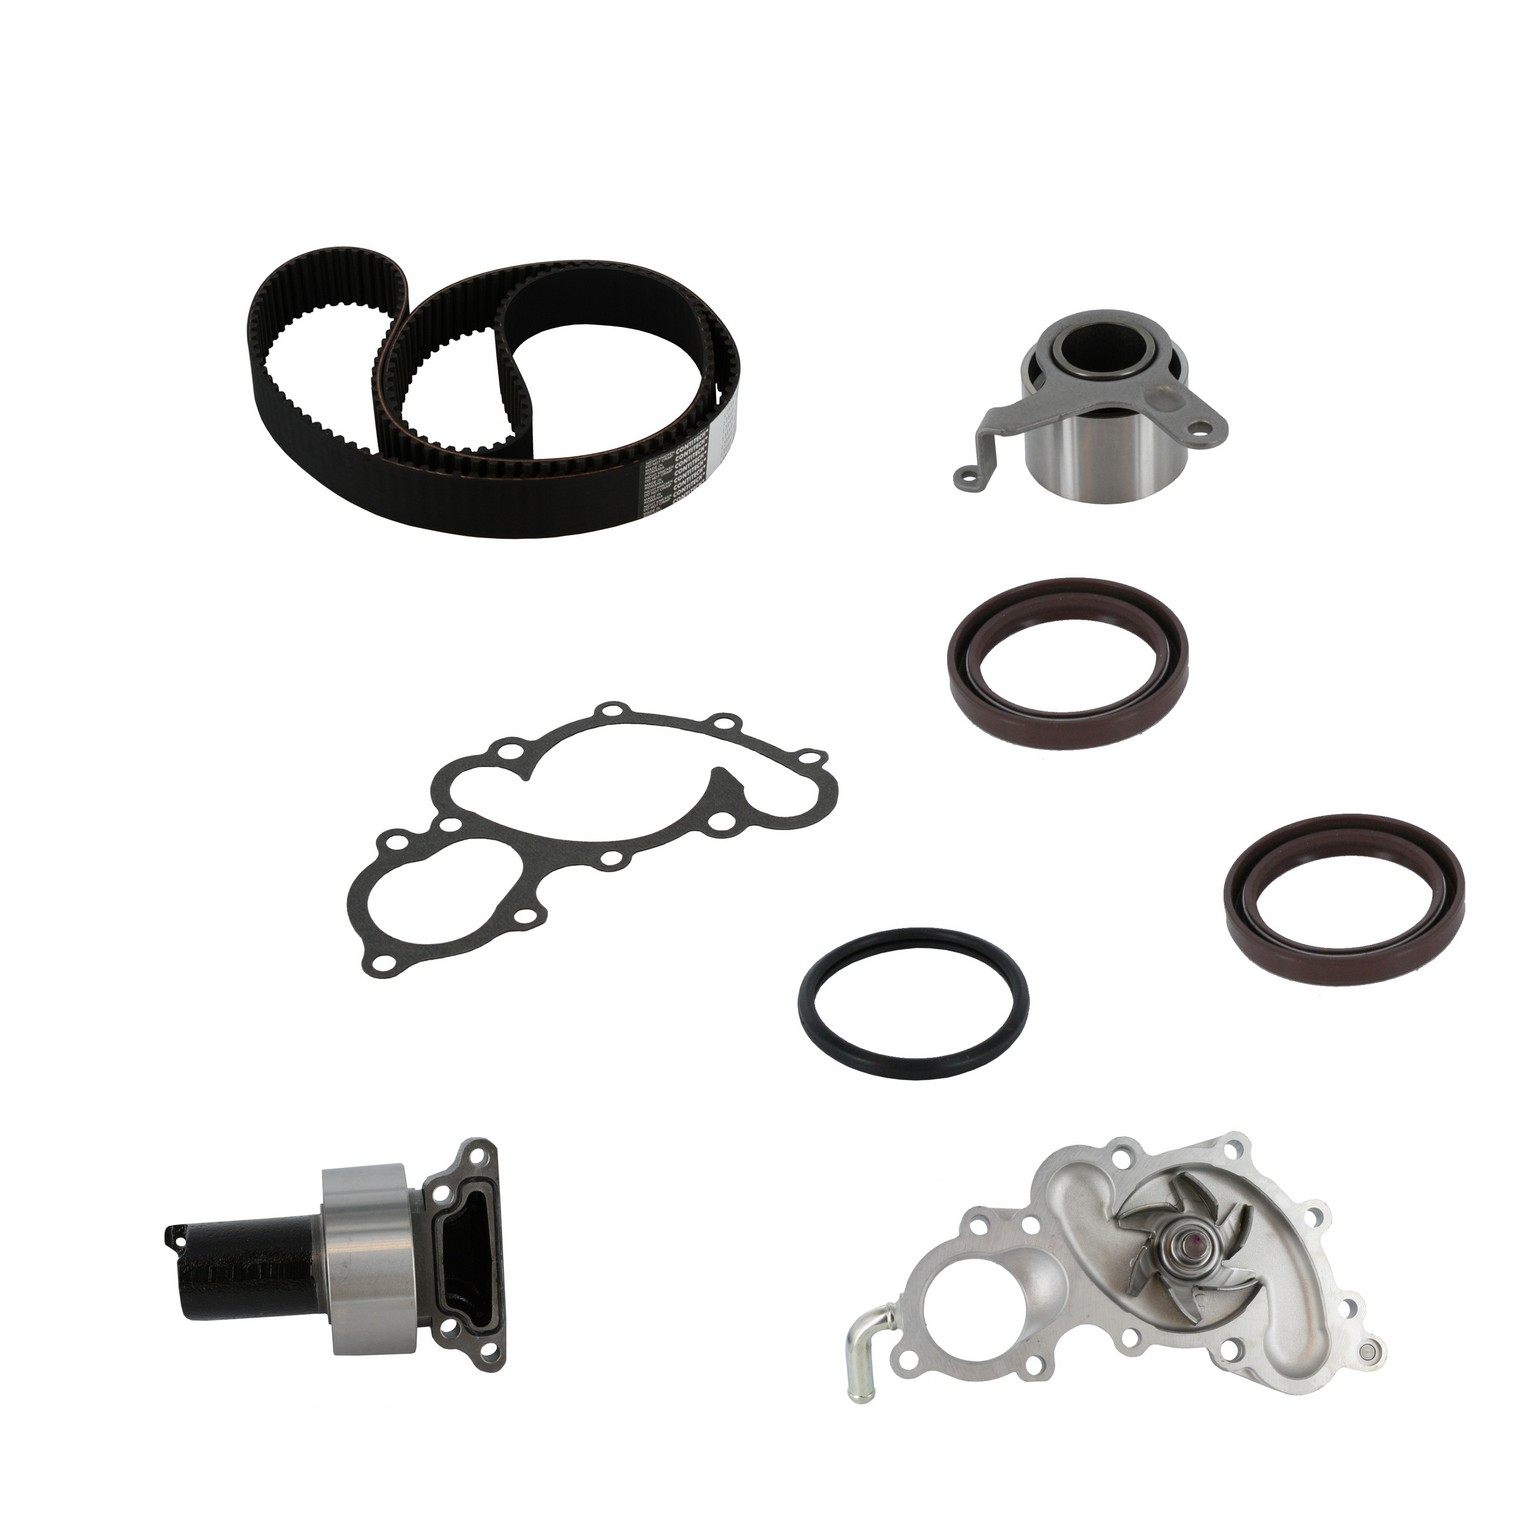 1990 Toyota 4runner Engine Timing Belt Kit With Water Pump For C8 Pp154lk1